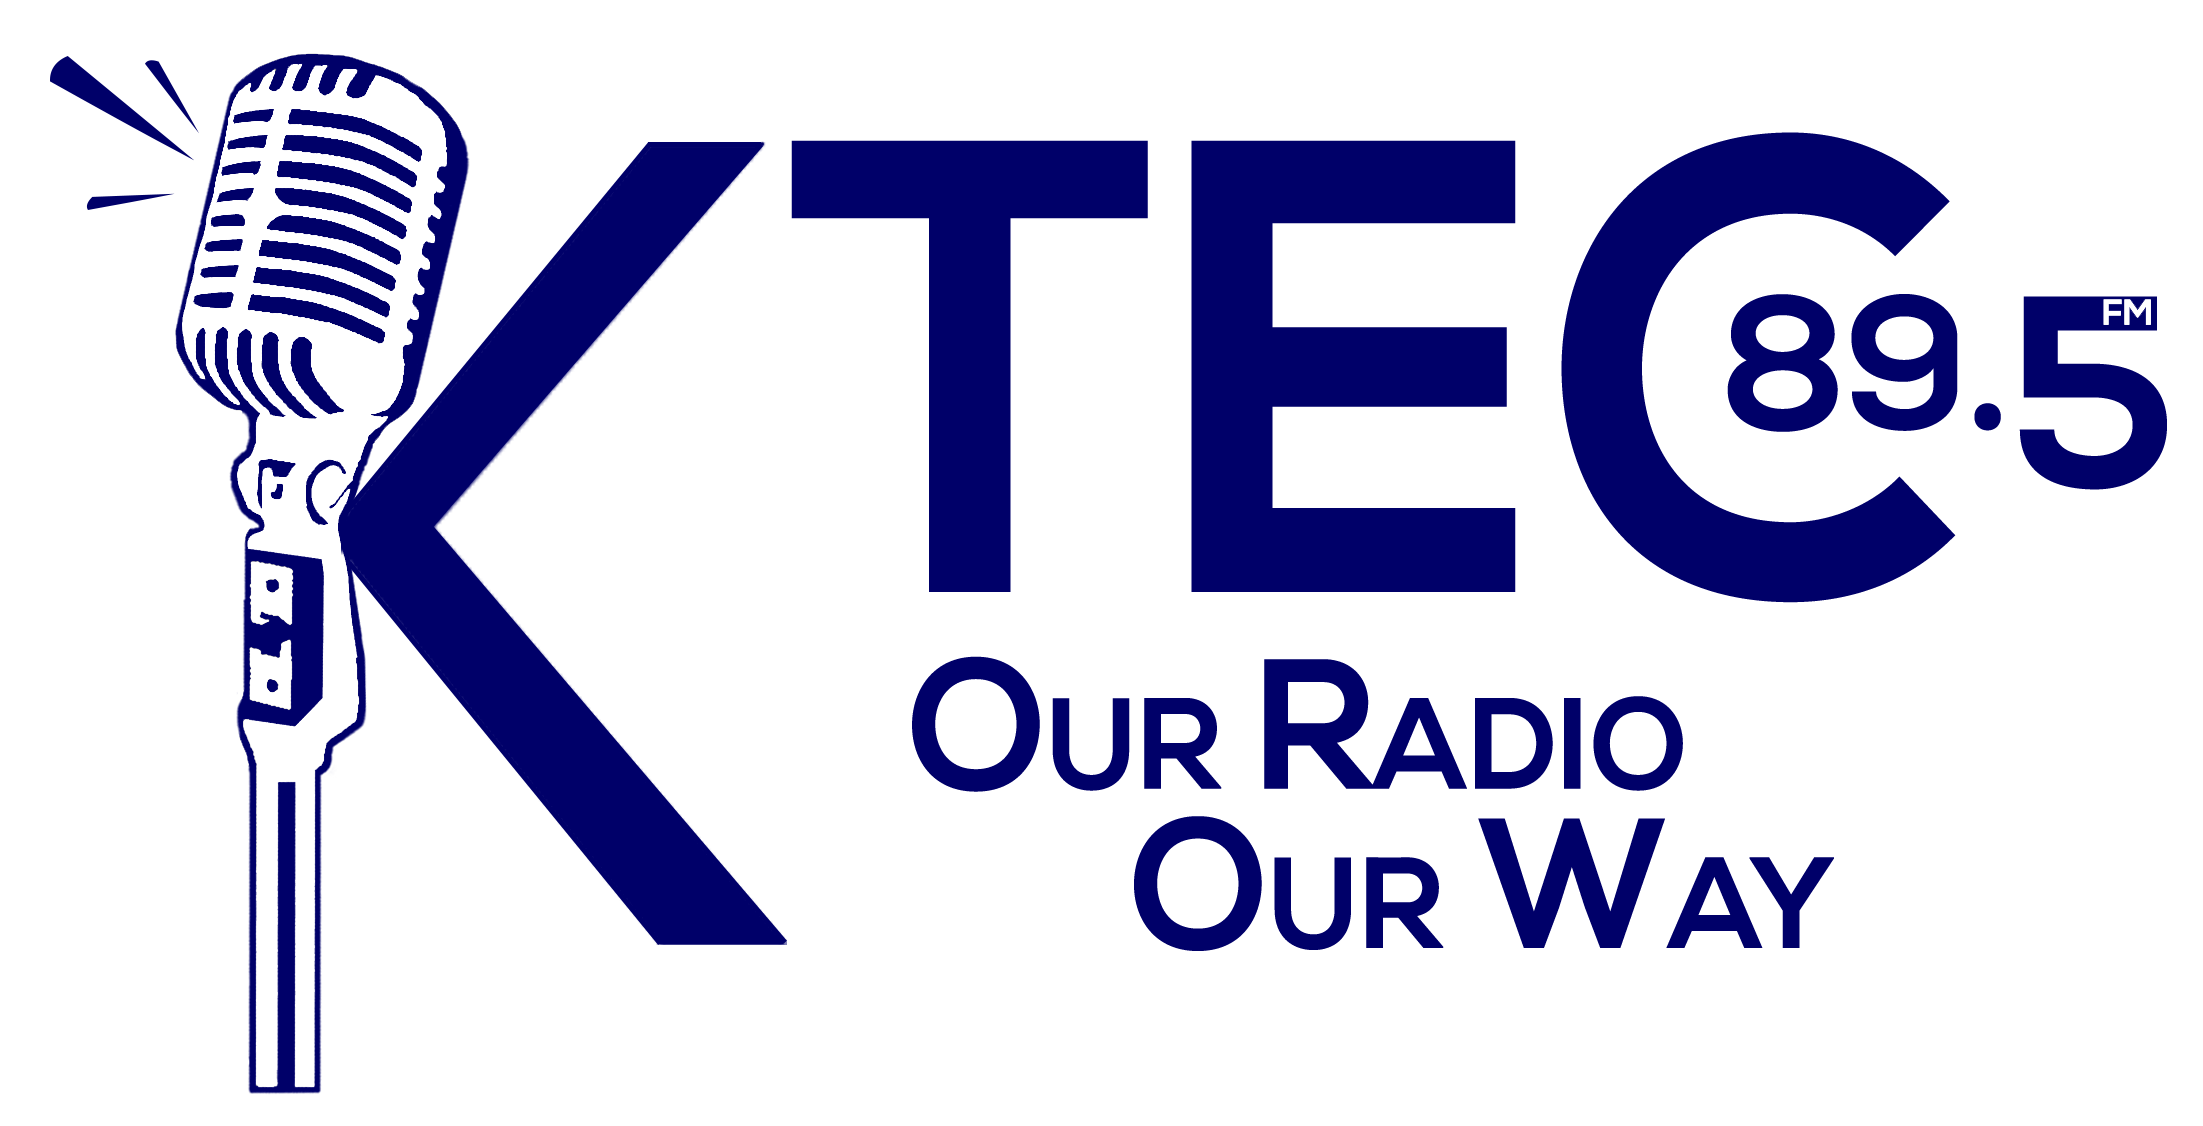 ktec 89 5 fm our radio our way